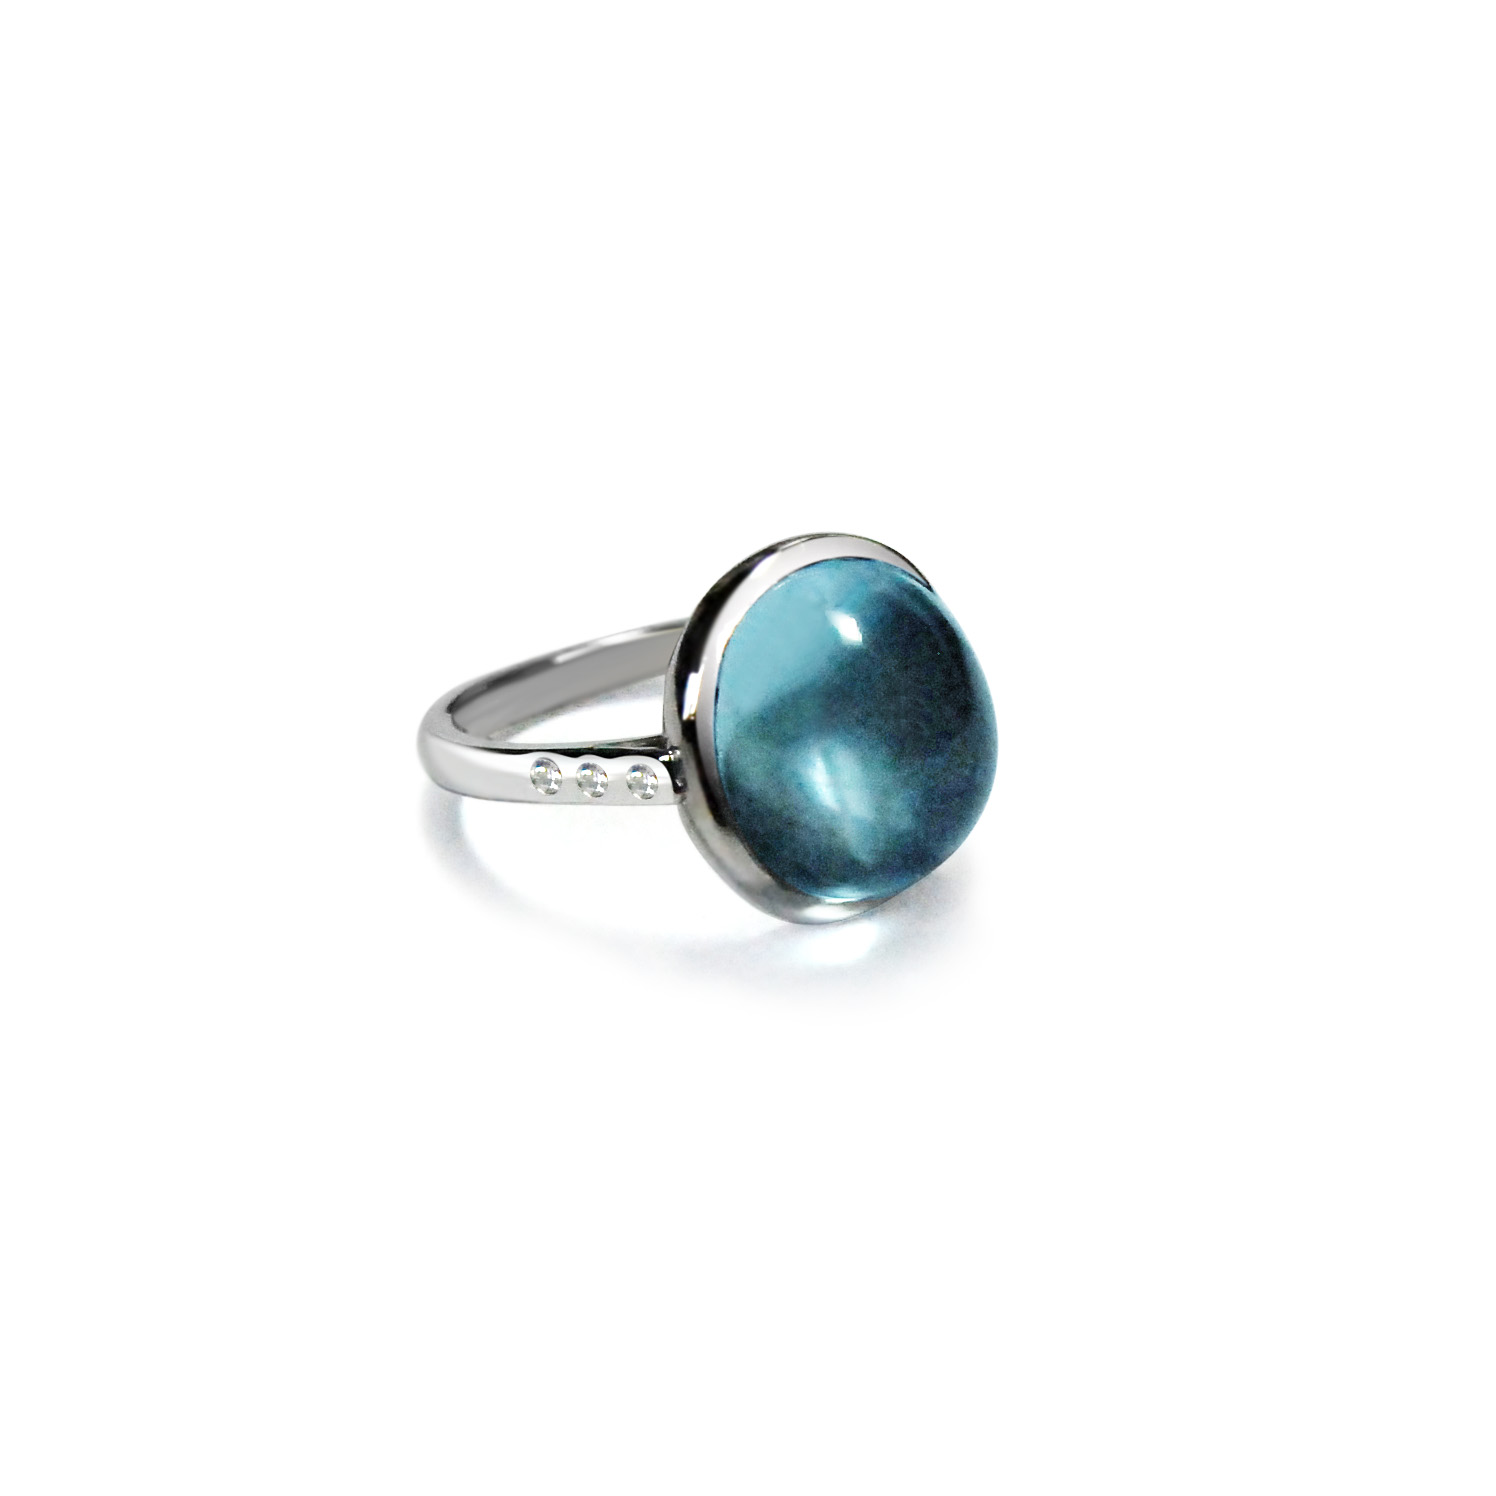 Cabochon-aquamarine-and-18ct-white-gold-ring-side-view.jpg